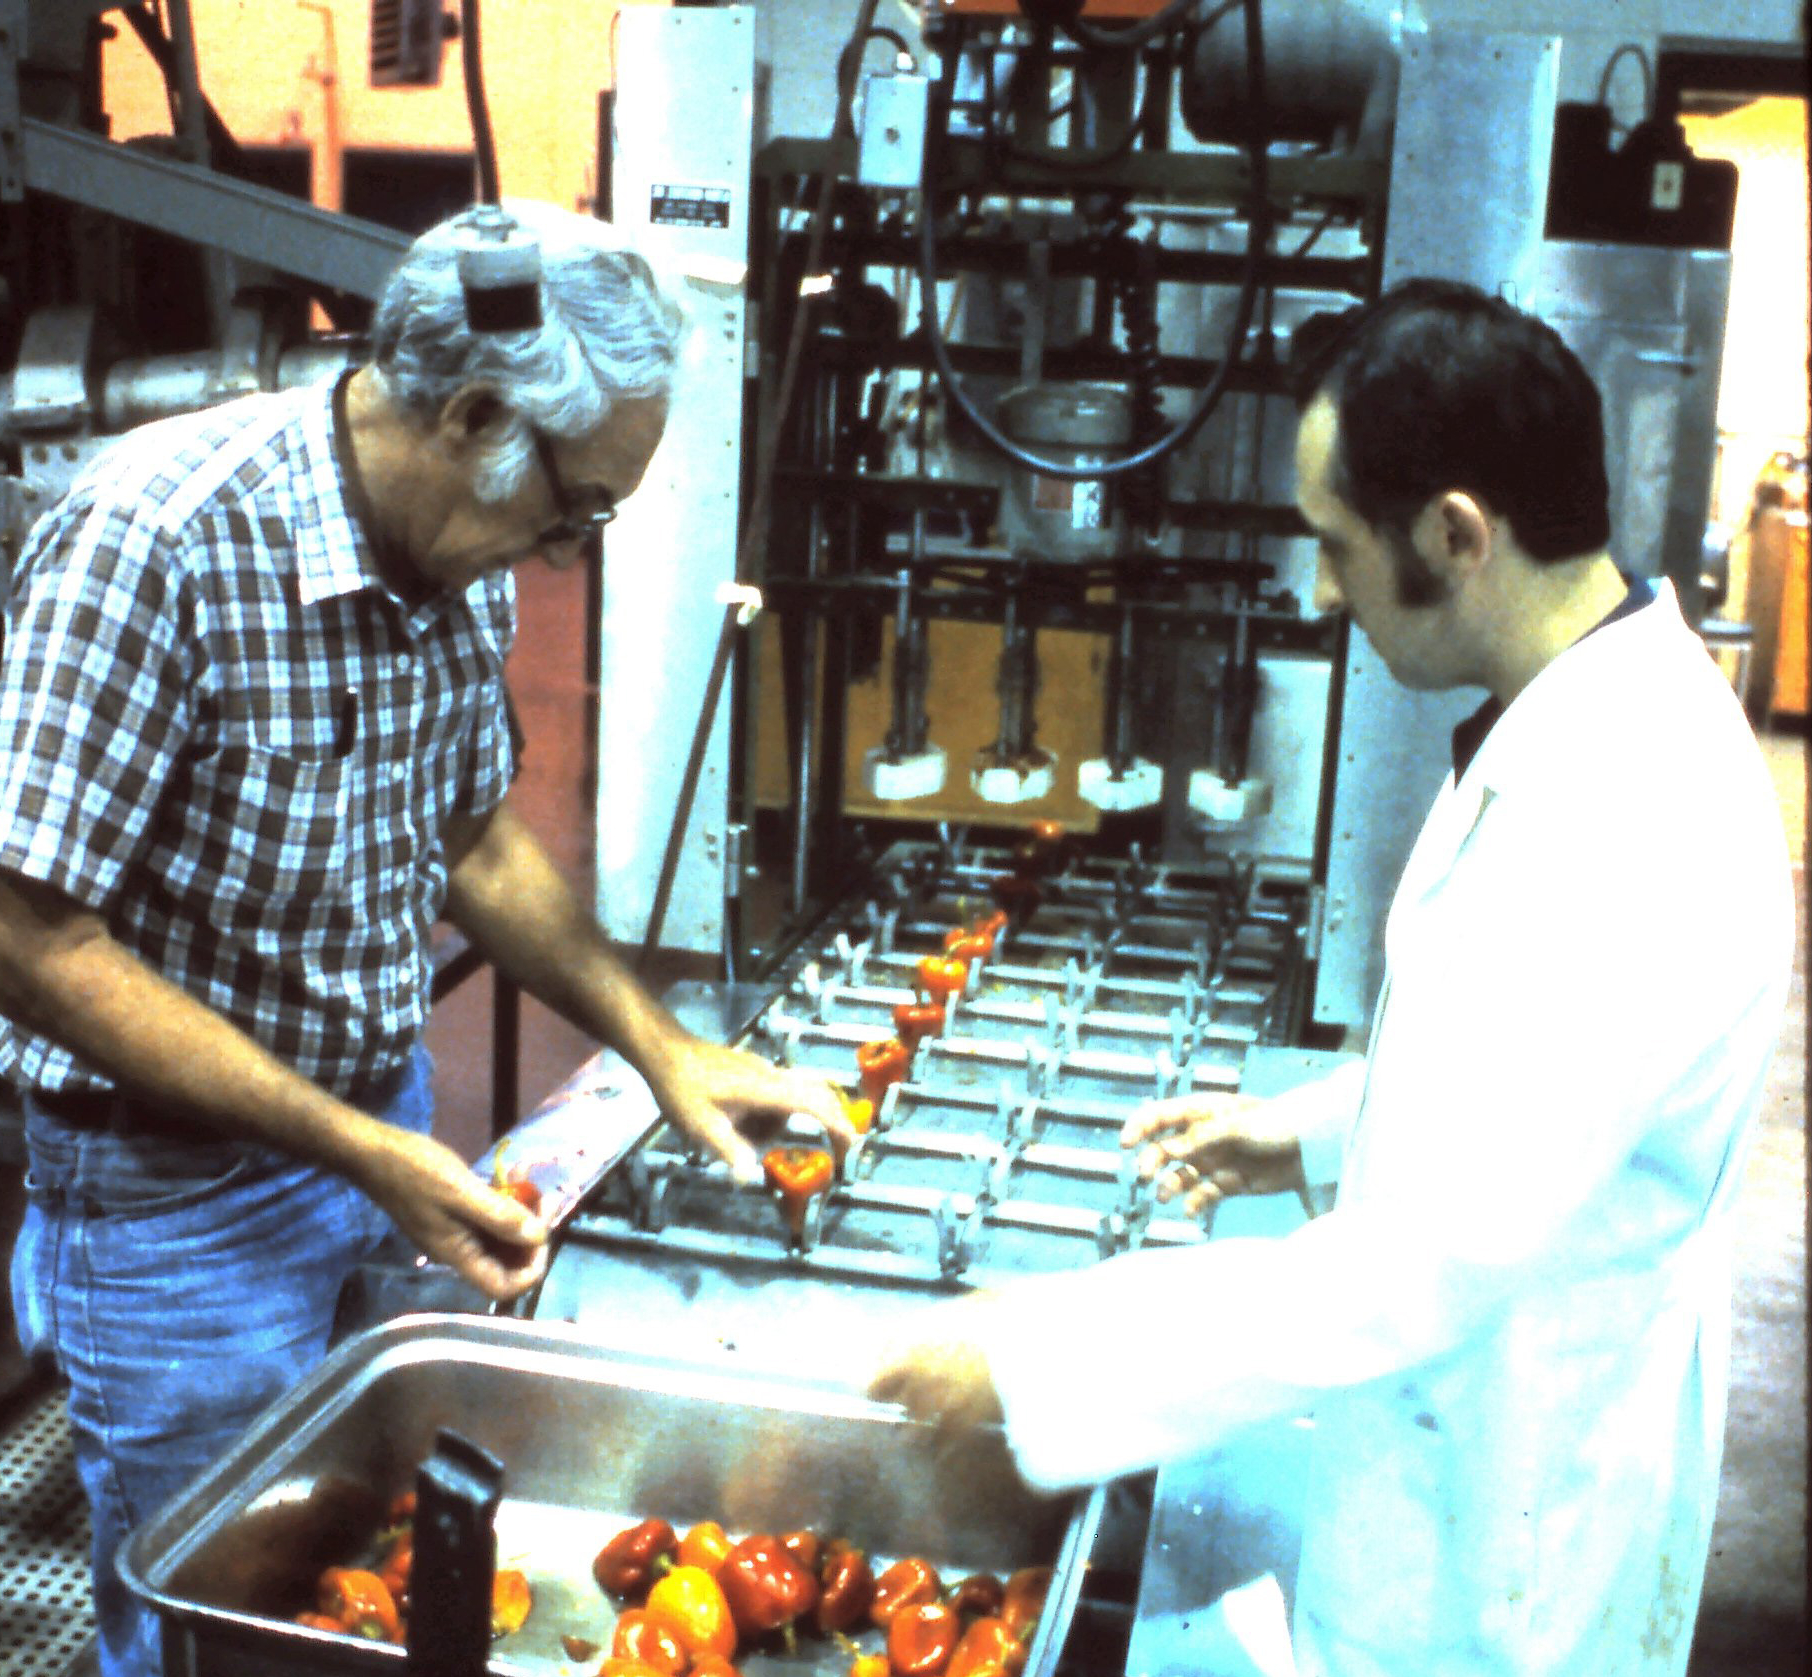 two research scientists setting up a coring machine with pimiento peppers